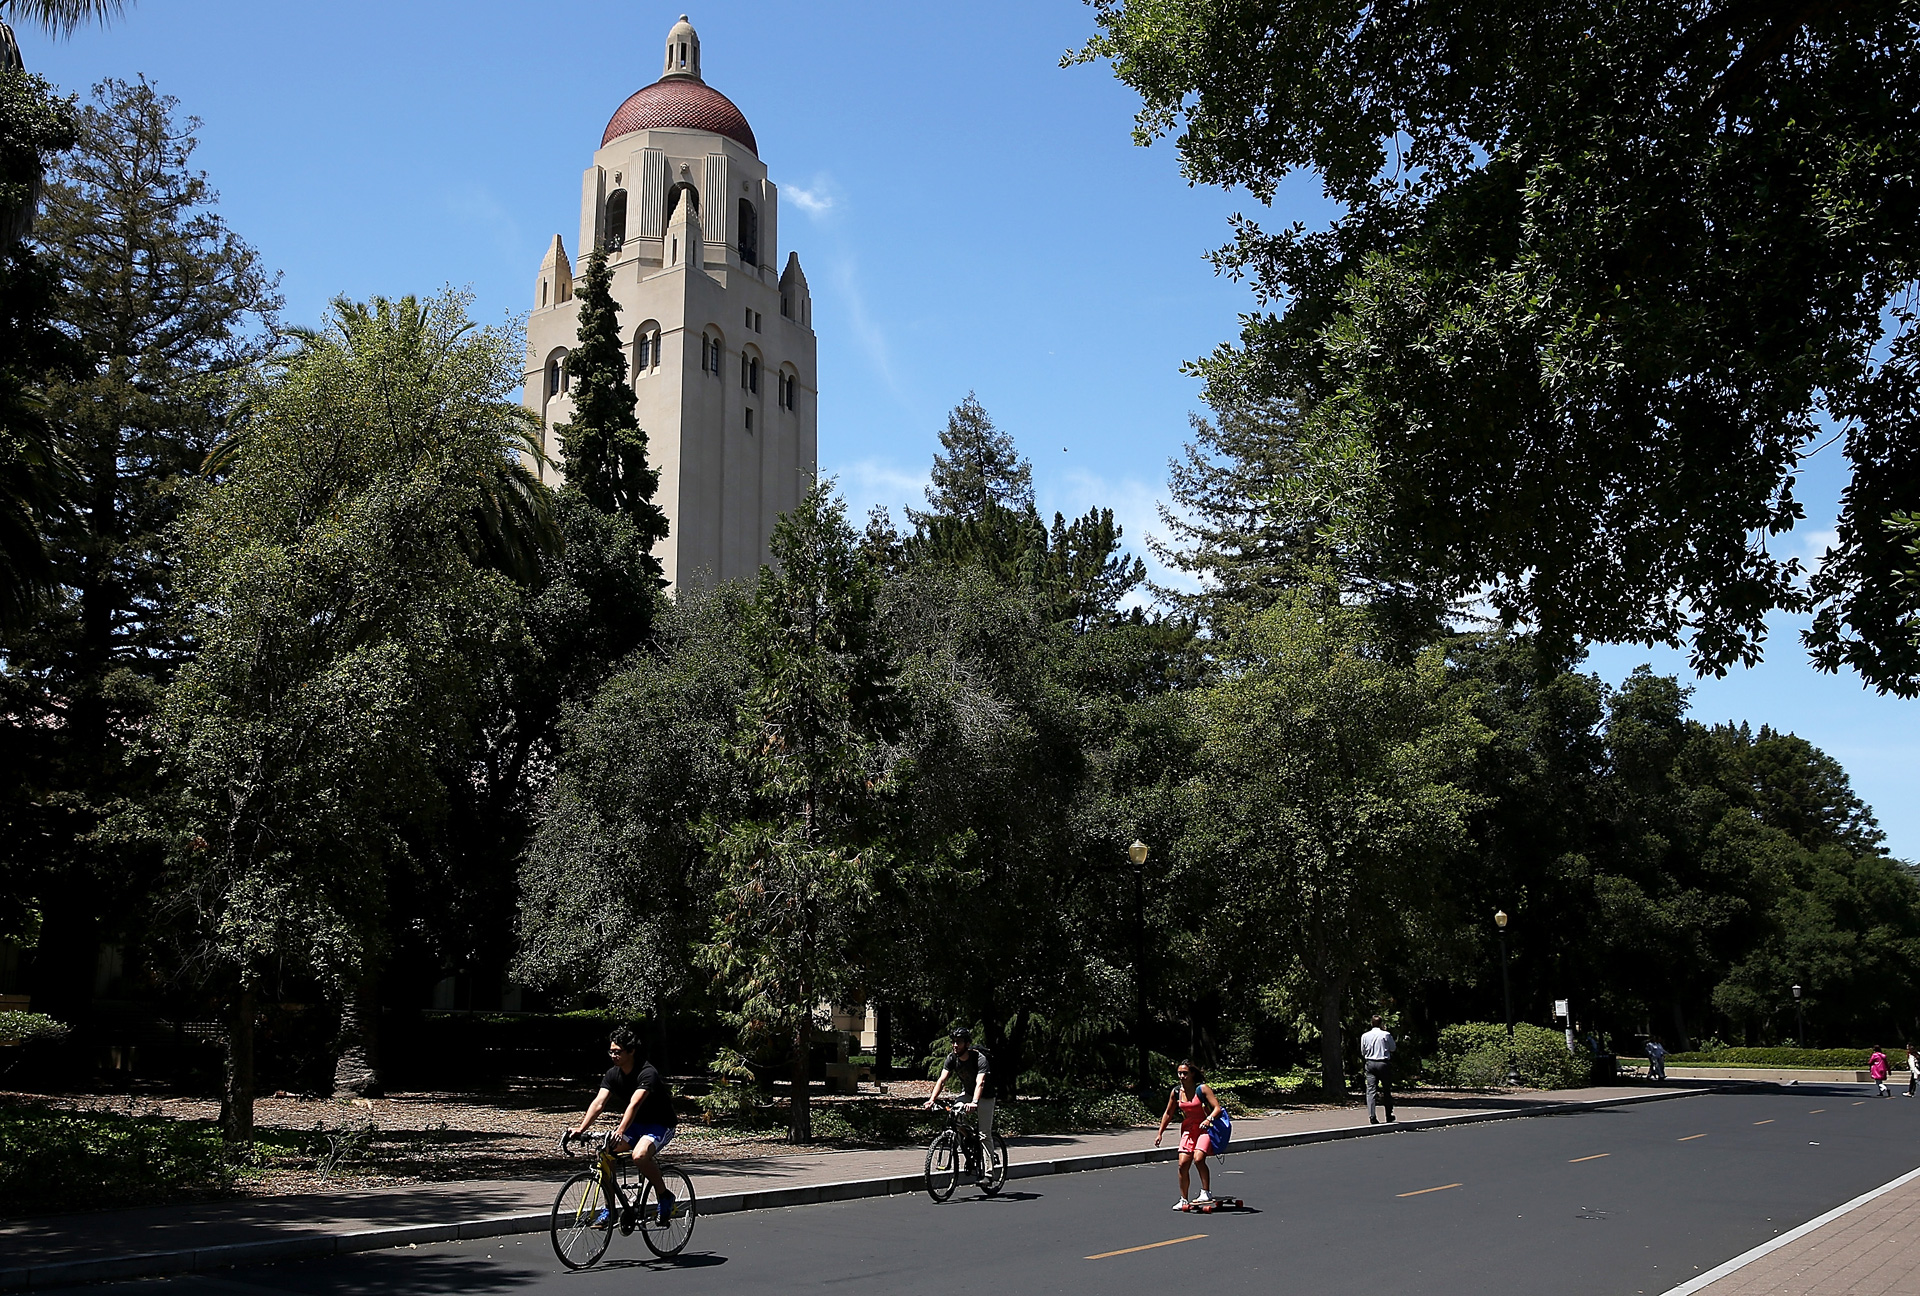 People ride bikes past Hoover Tower on the Stanford University campus.